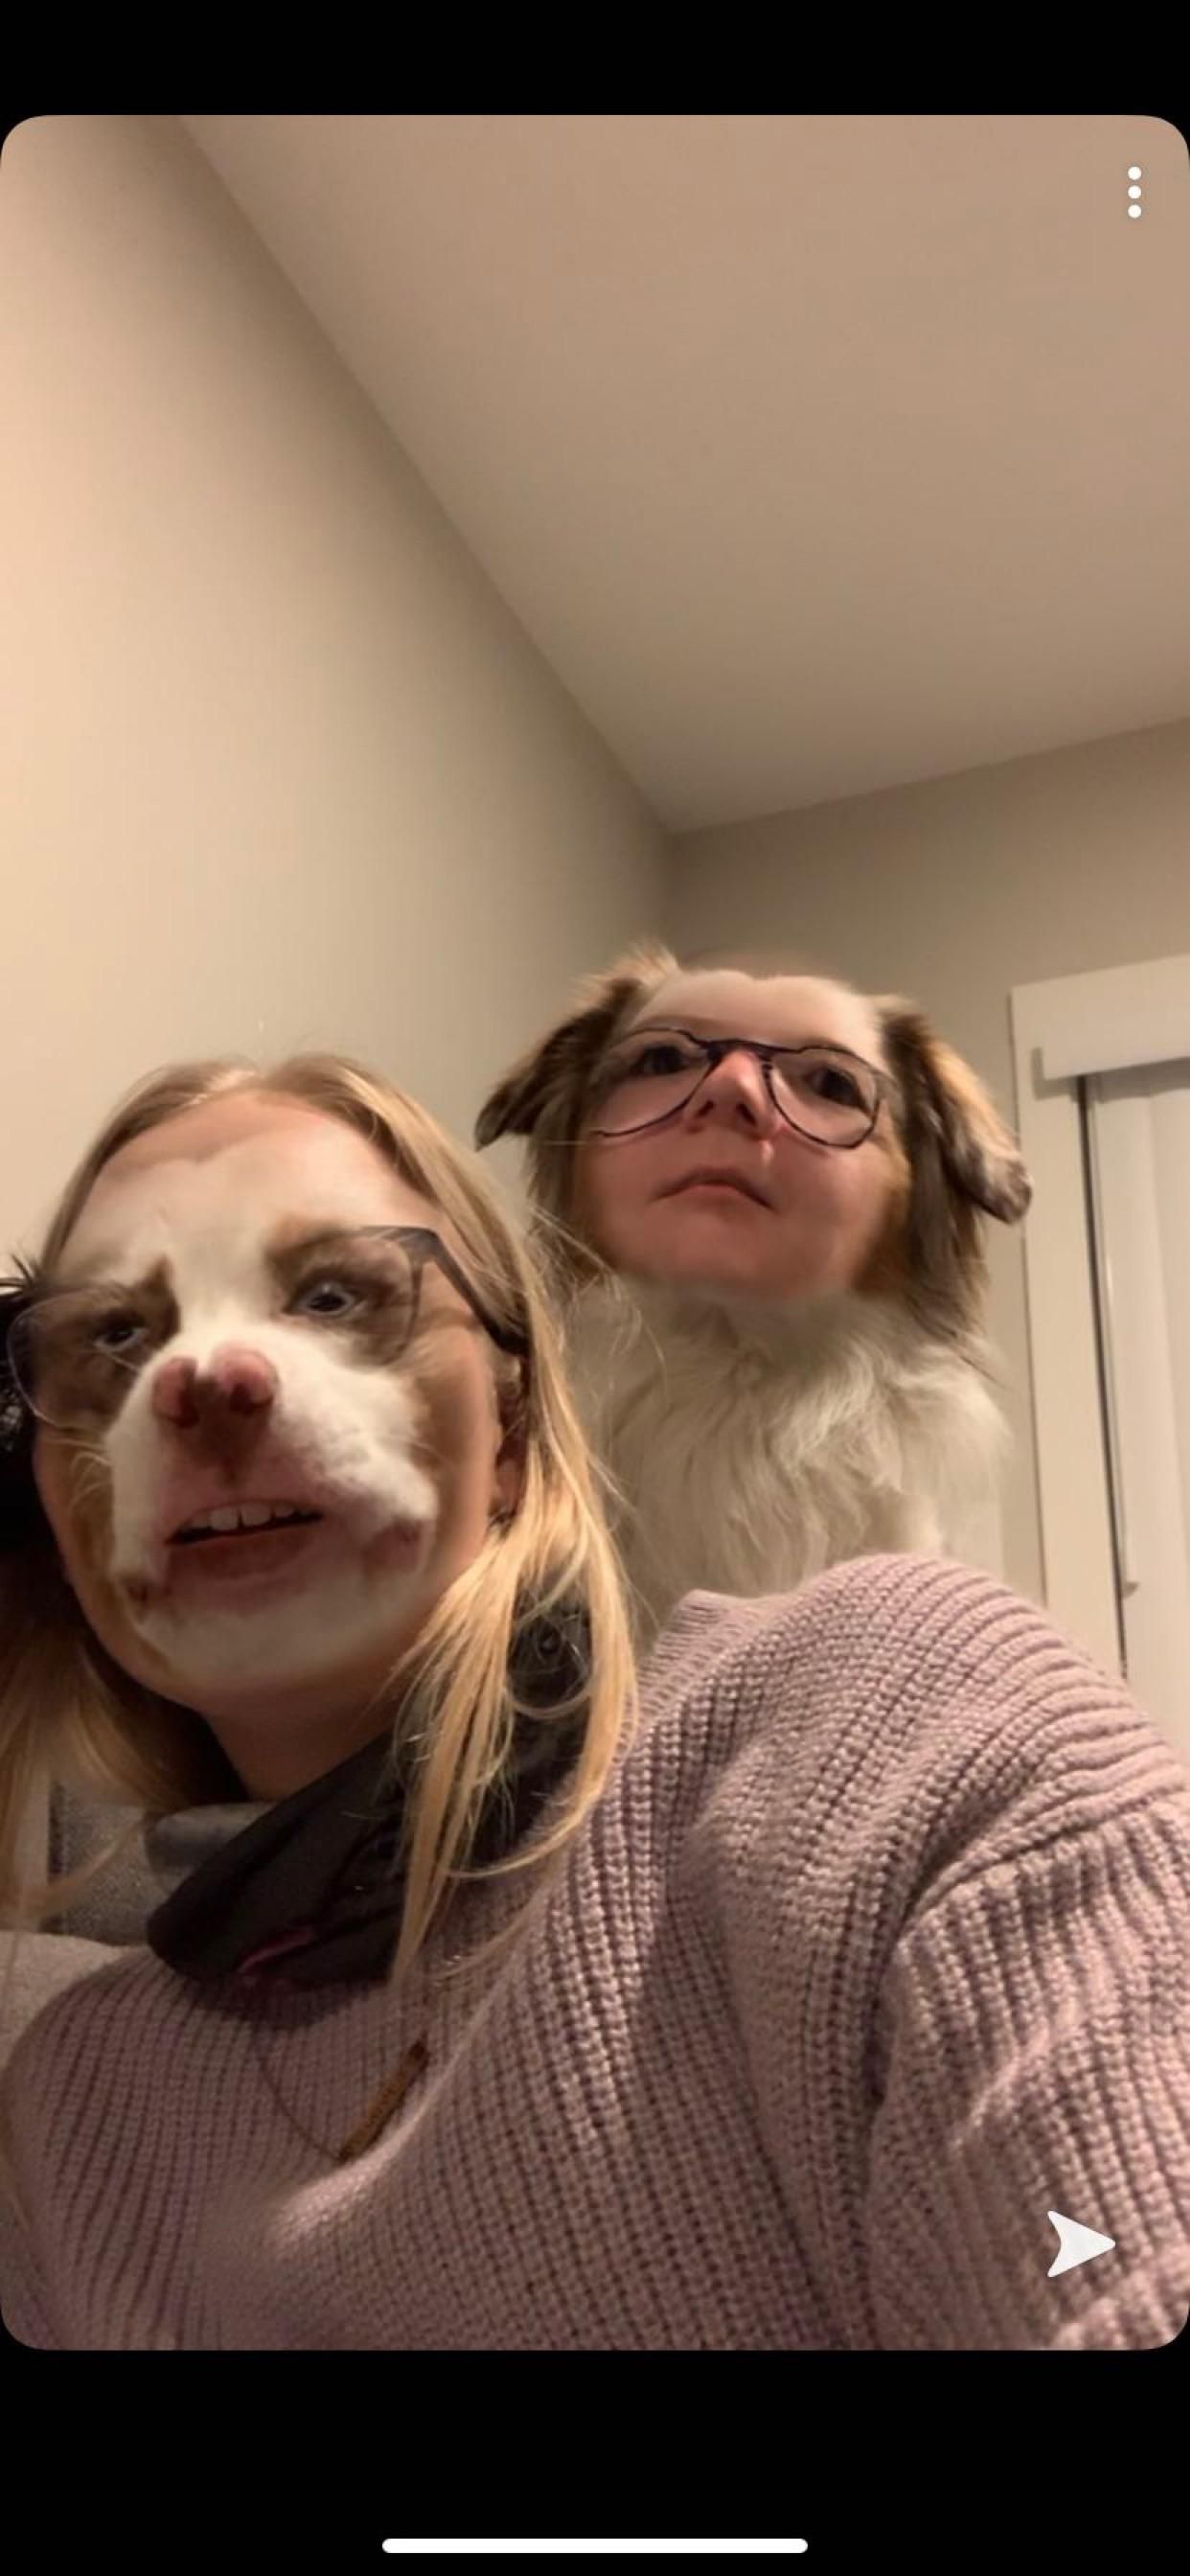 My sister had face swap open on her phone and our dog jumped behind her